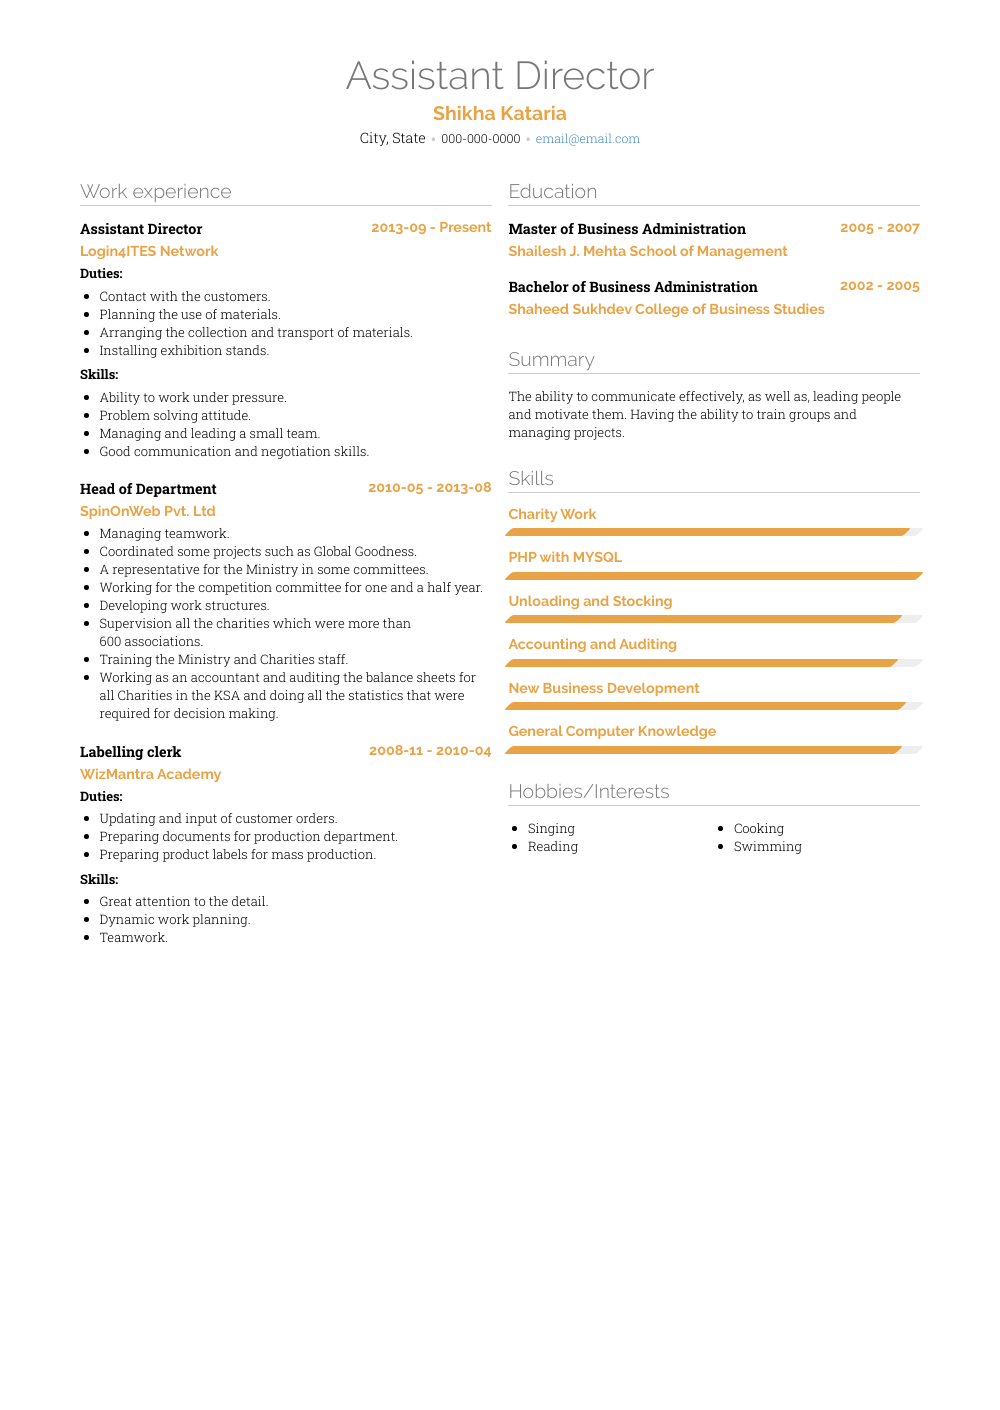 Assistant Director Resume Sample